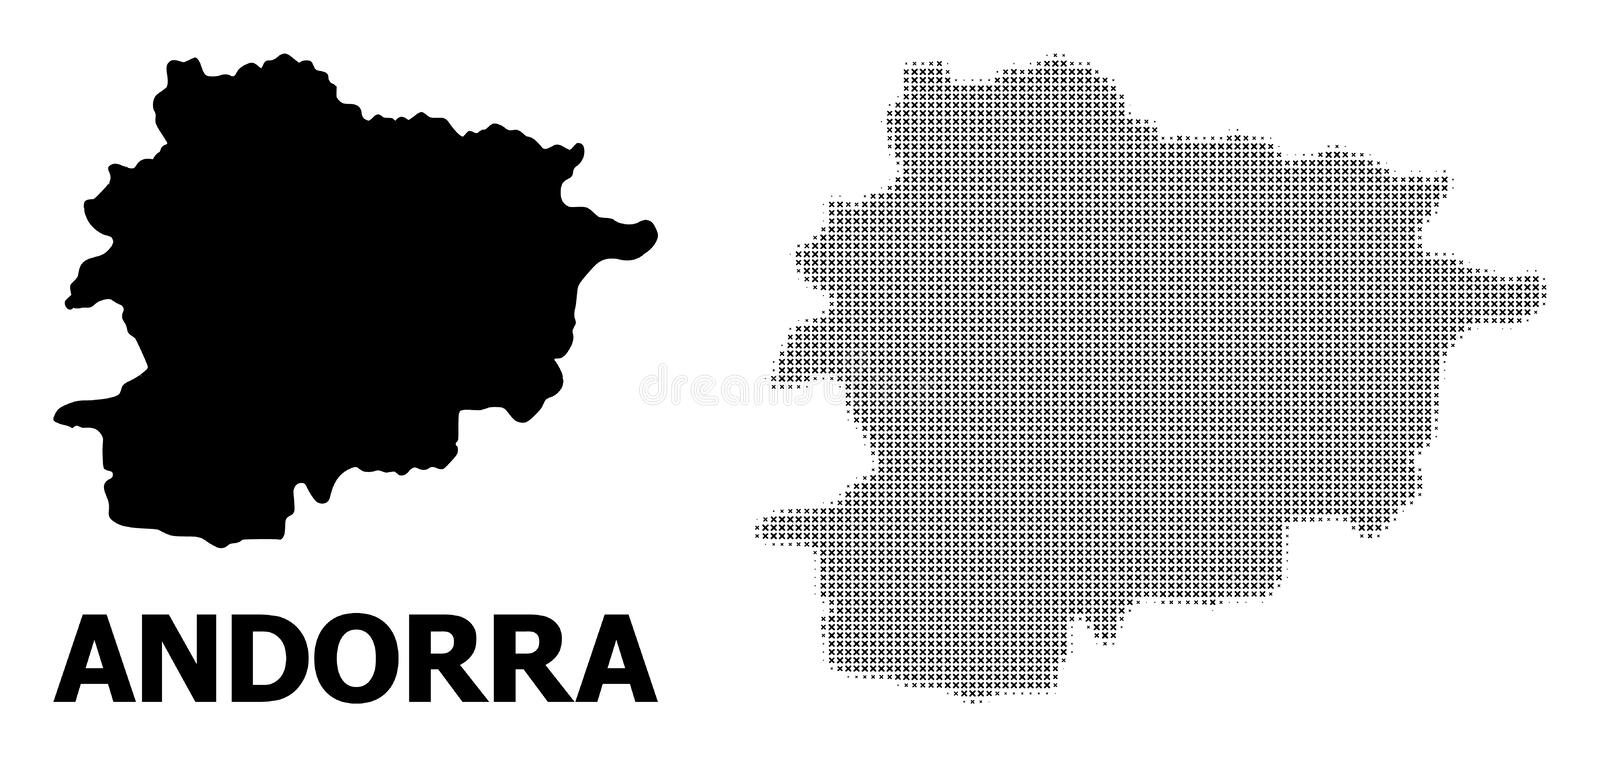 Vector Halftone Pattern and Solid Map of Andorra. Halftone and solid map of Andorra composition illustration. Vector map of Andorra composition of x-cross spots stock illustration